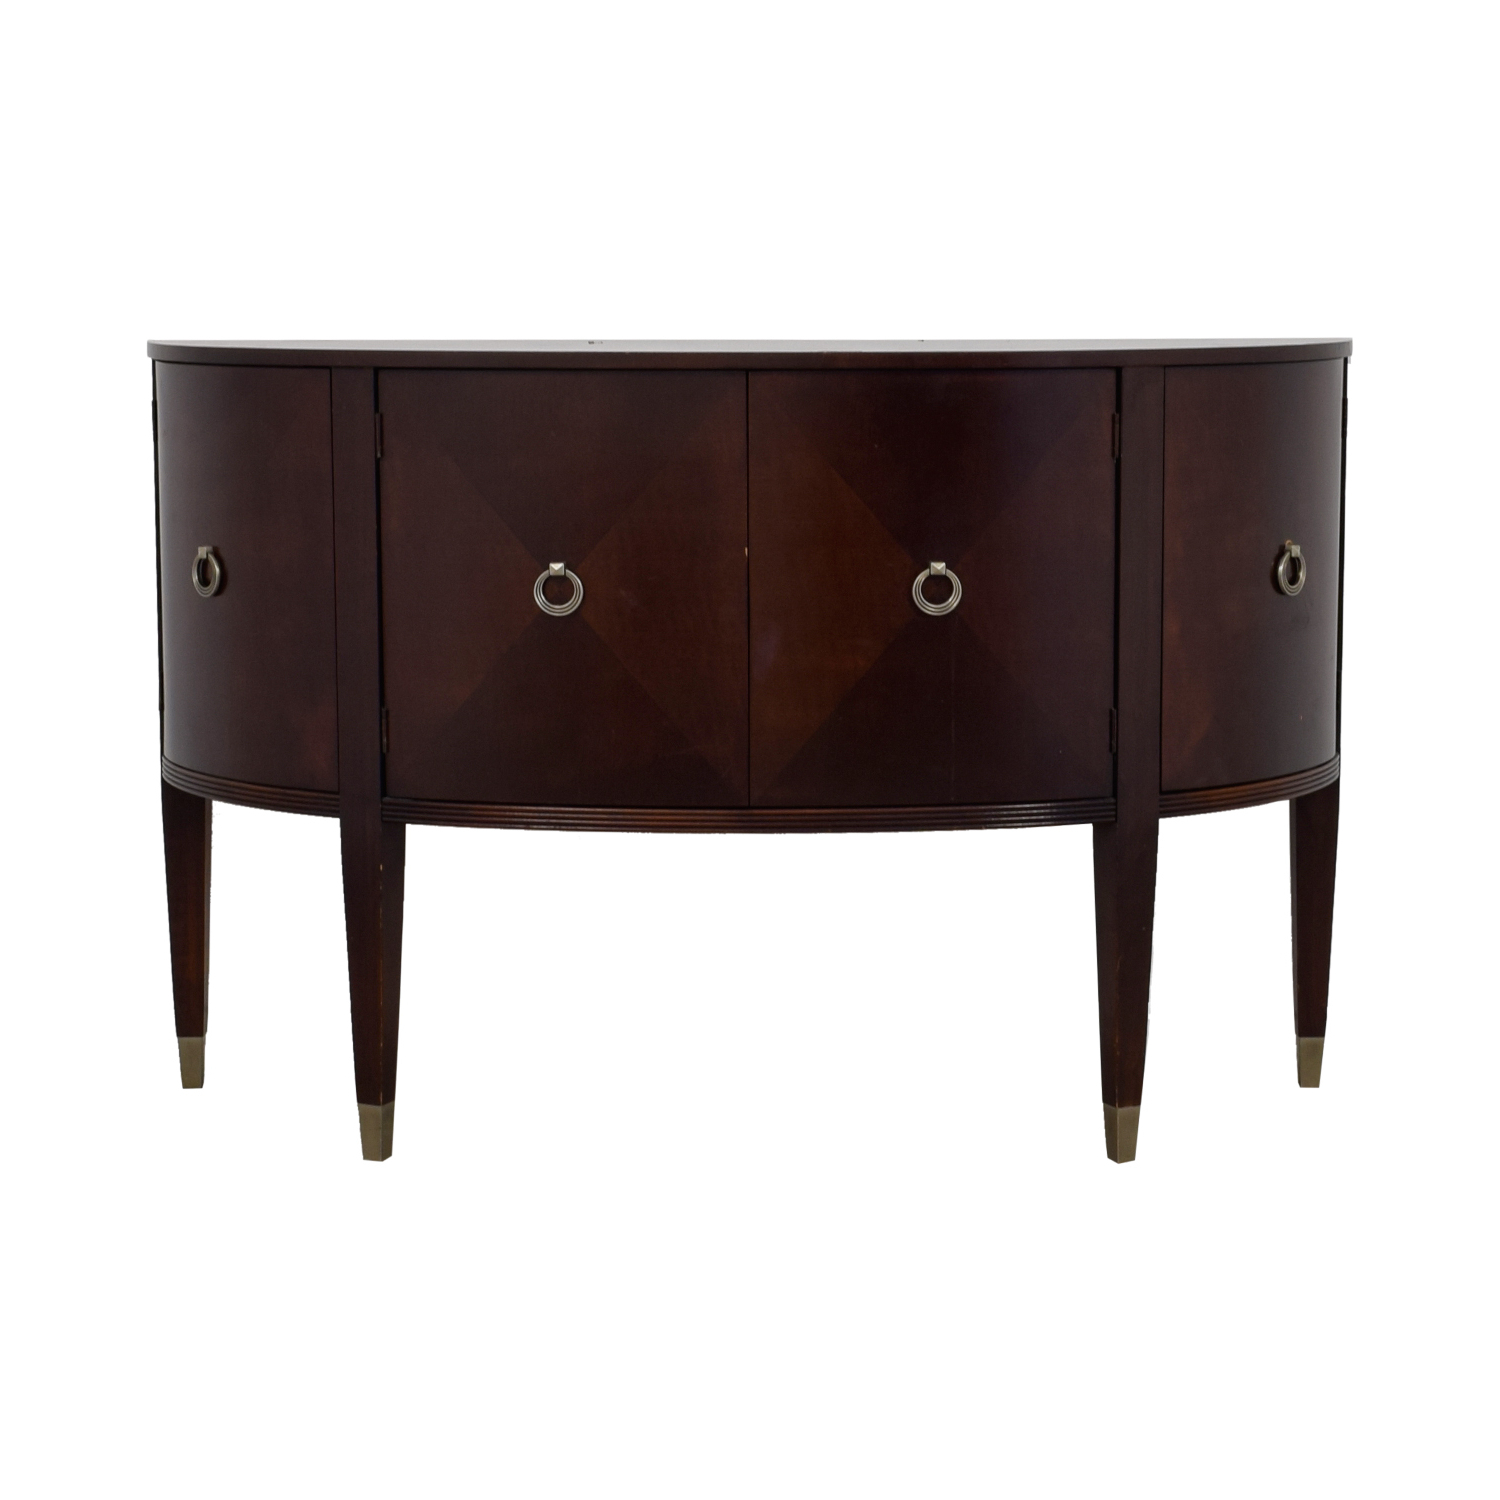 [%74% Off – Ethan Allen Ethan Allen Wood Buffet Console Table / Storage With Famous Ethan Console Tables|ethan Console Tables Intended For Well Known 74% Off – Ethan Allen Ethan Allen Wood Buffet Console Table / Storage|most Current Ethan Console Tables Pertaining To 74% Off – Ethan Allen Ethan Allen Wood Buffet Console Table / Storage|favorite 74% Off – Ethan Allen Ethan Allen Wood Buffet Console Table / Storage Inside Ethan Console Tables%] (View 13 of 20)